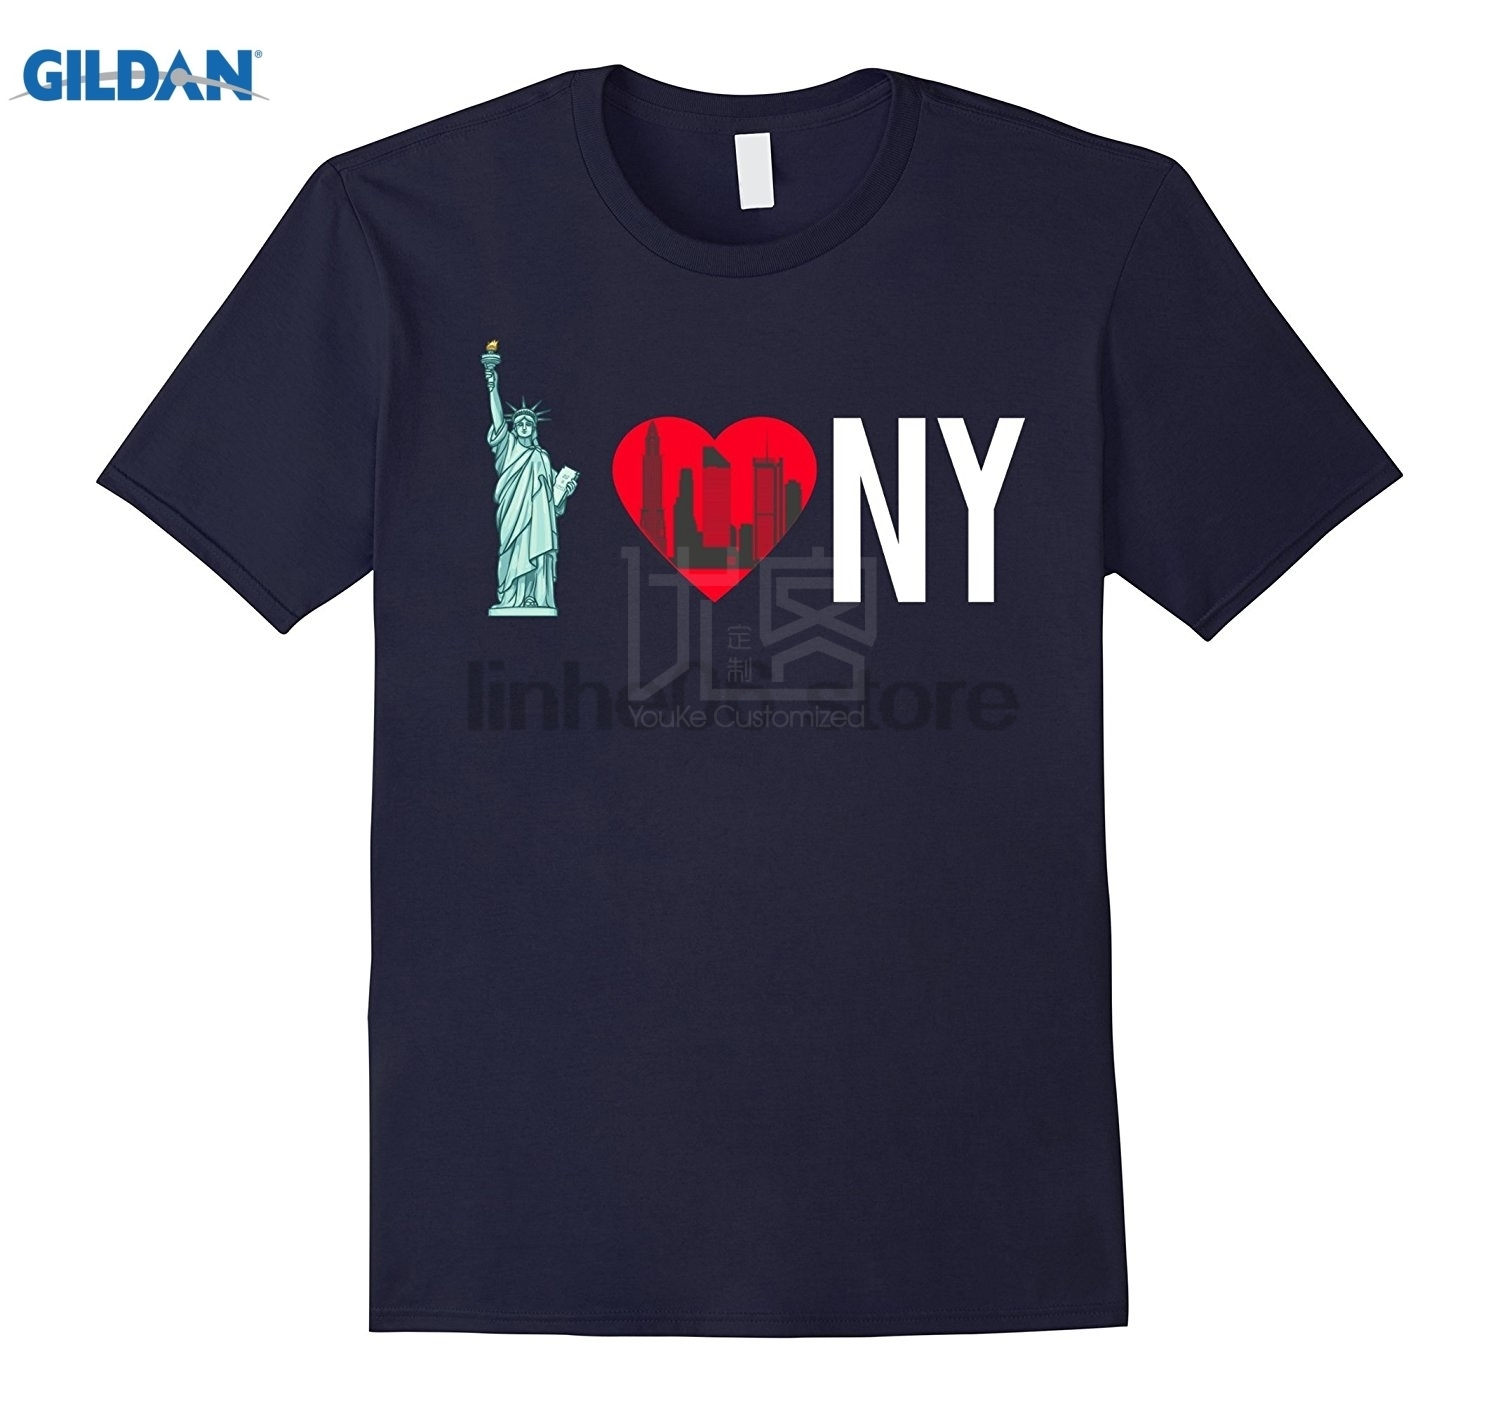 <font><b>I</b></font> <font><b>love</b></font> <font><b>NY</b></font> <font><b>Shirt</b></font> - New York City Skyline Gift Summer Mens T <font><b>Shirt</b></font> Funny Tees Cotton Tops T <font><b>Shirt</b></font> Vintage Crew Neck image